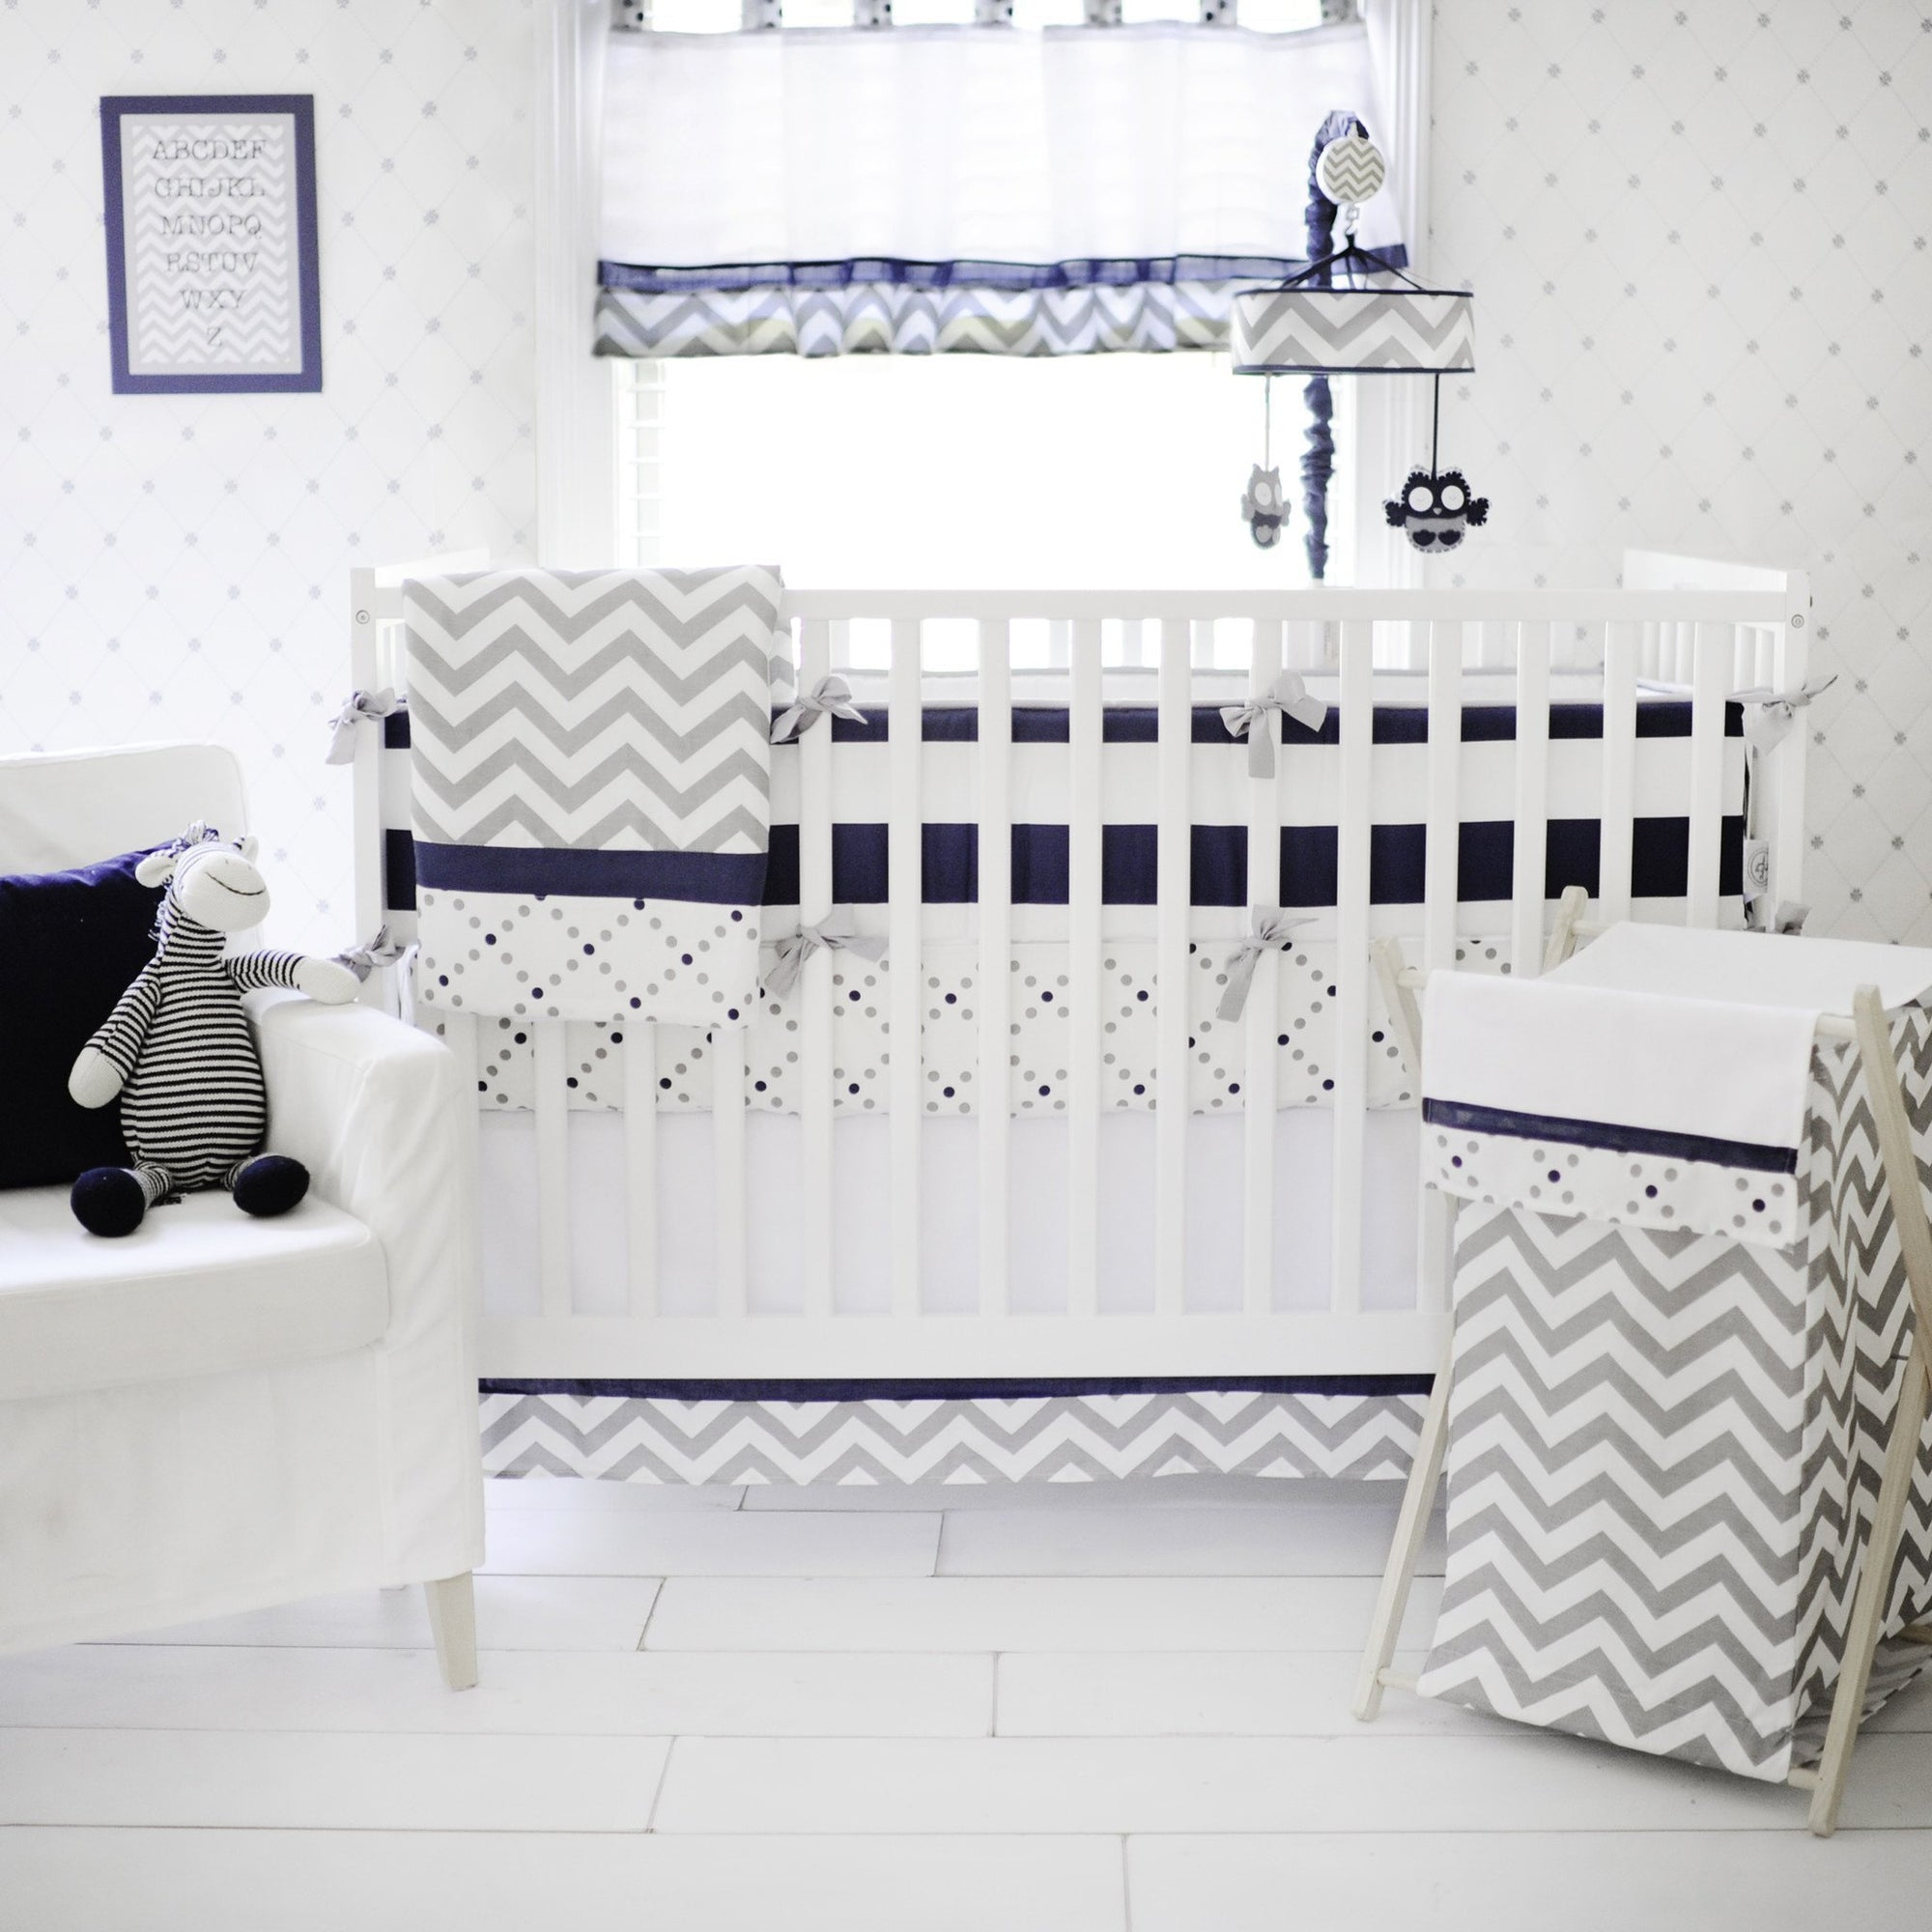 Gray and Navy Out of the Blue Crib Bedding Set-Crib Bedding Set-Jack and Jill Boutique